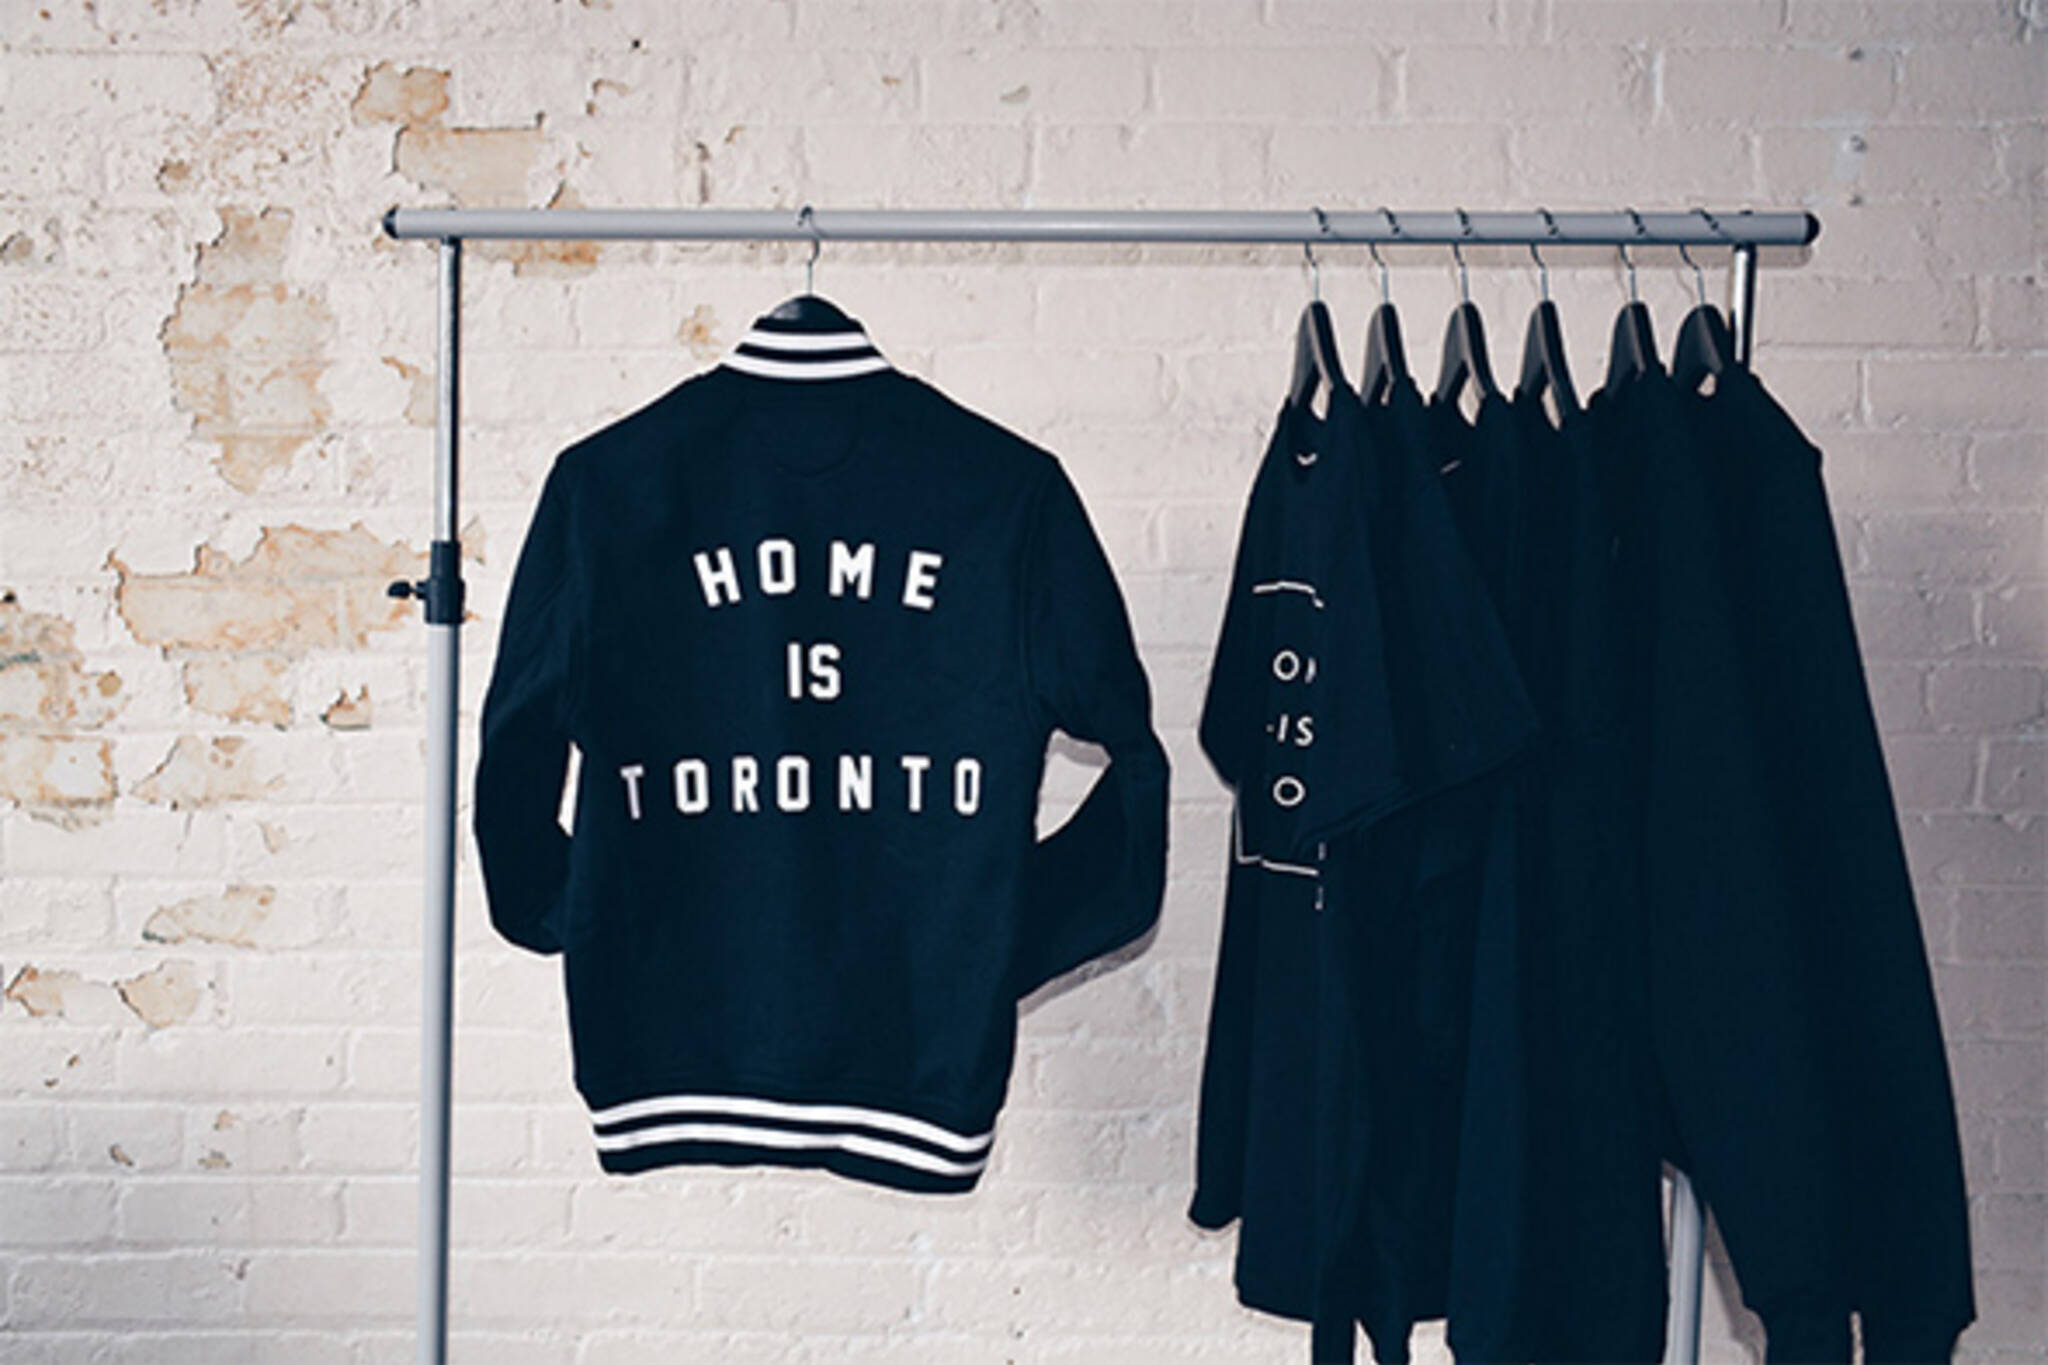 toronto holiday gifts